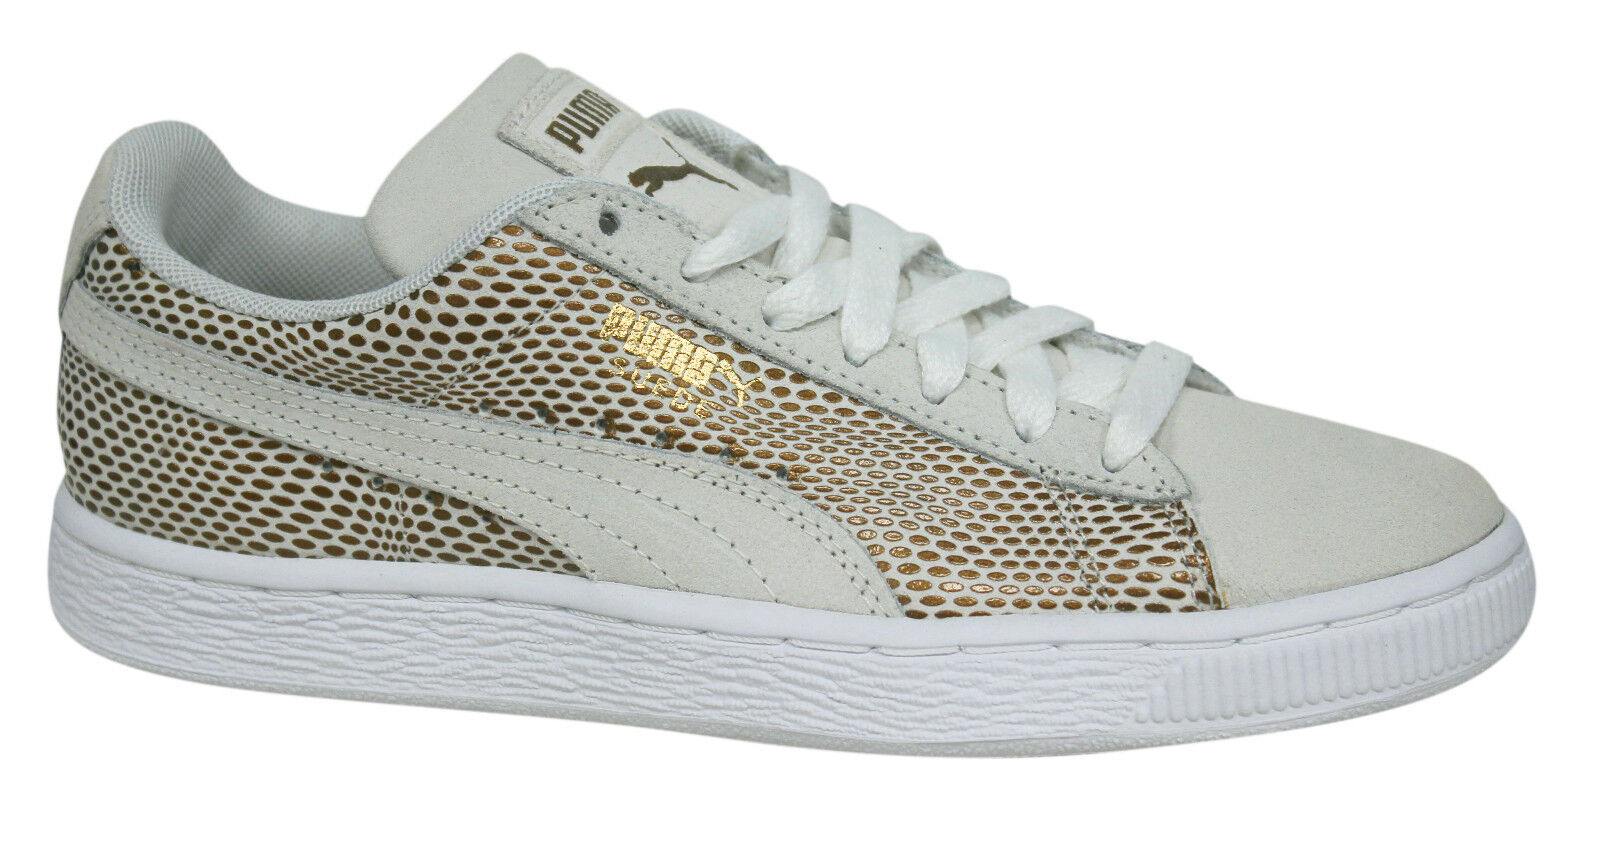 Puma Suede Womens Lace Up Leather Trainers Gold White 361862 02 D1